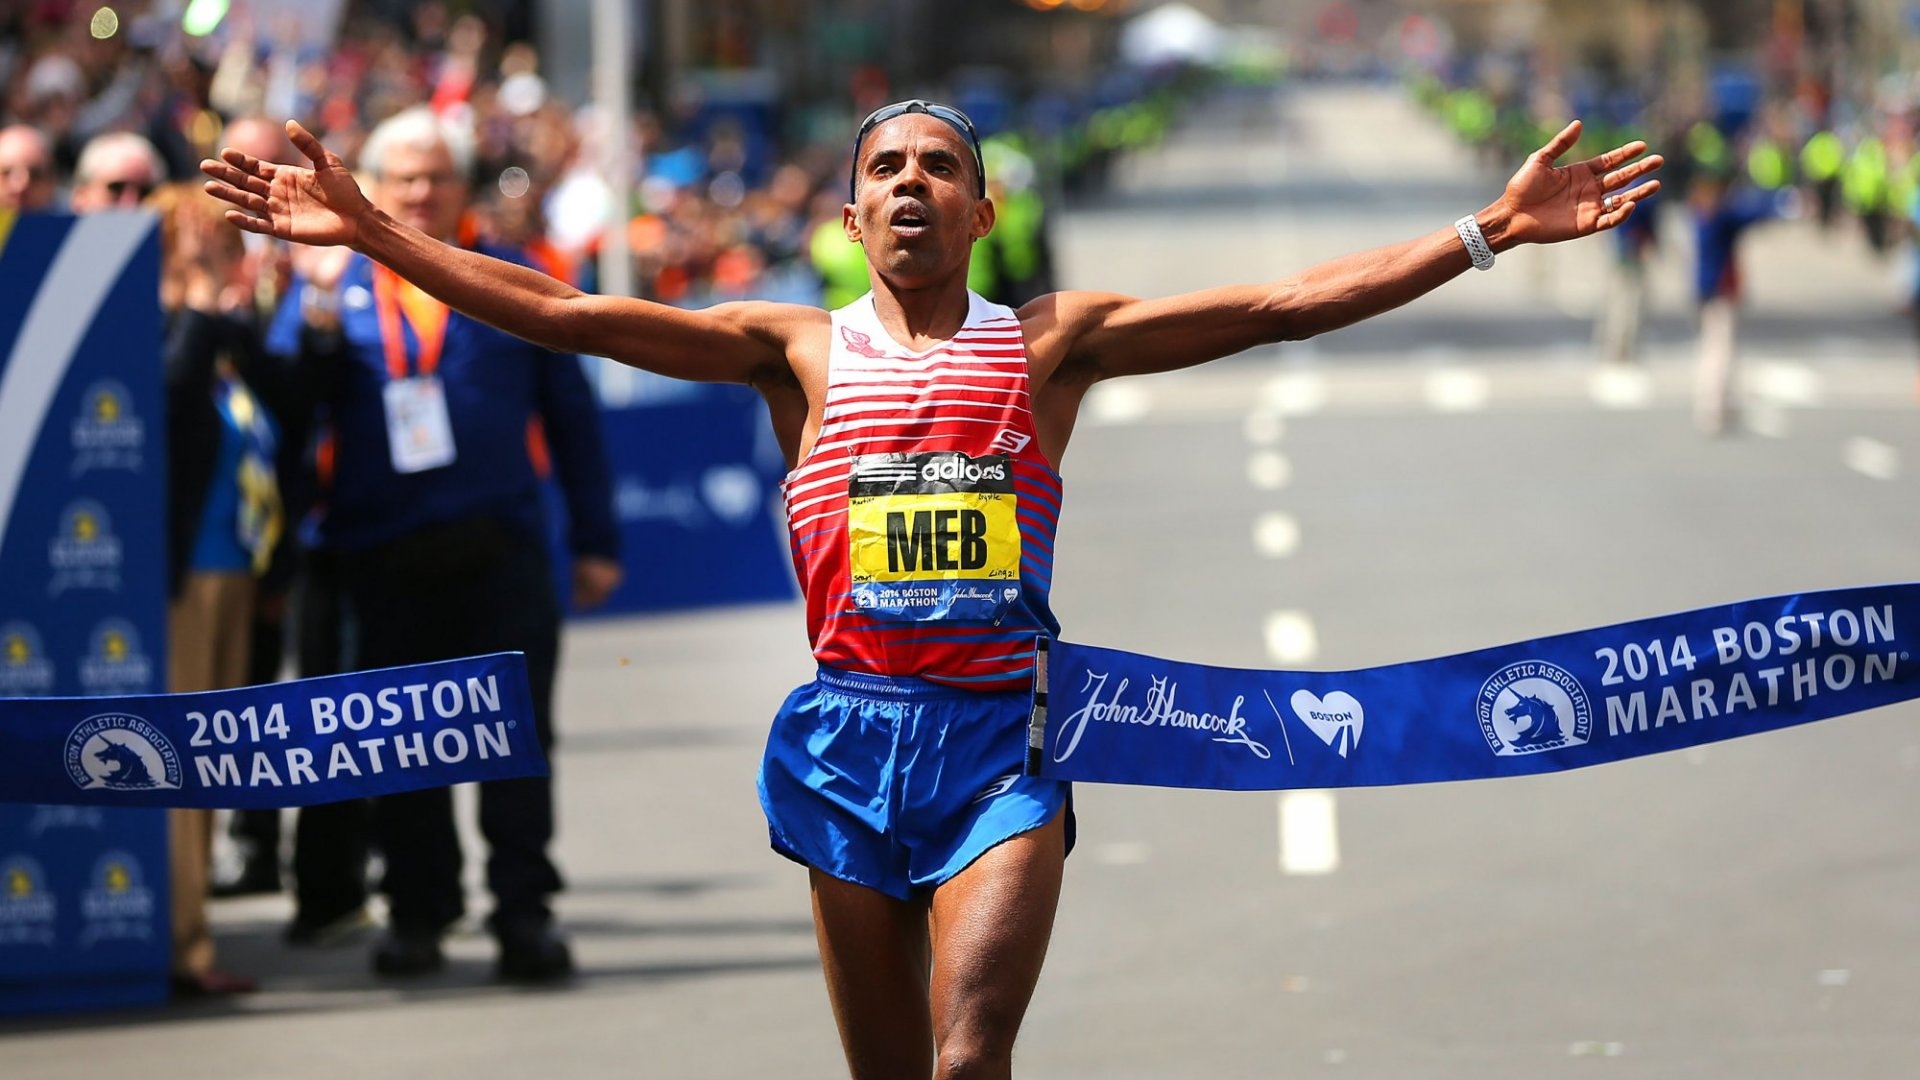 Lessons for Success From a Champion Marathon Runner